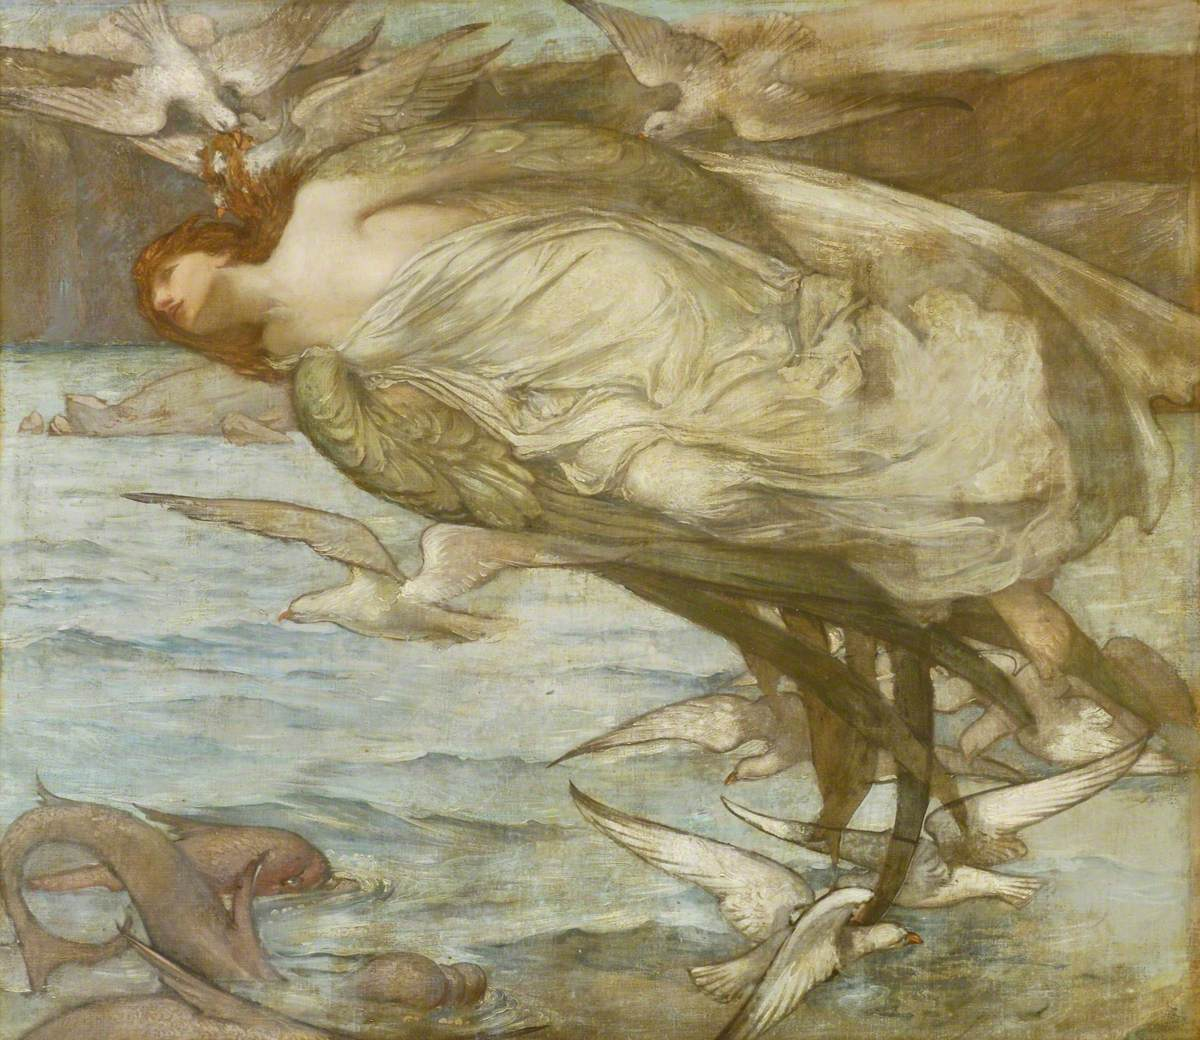 Orpheus: Single Bacchante with Seabirds